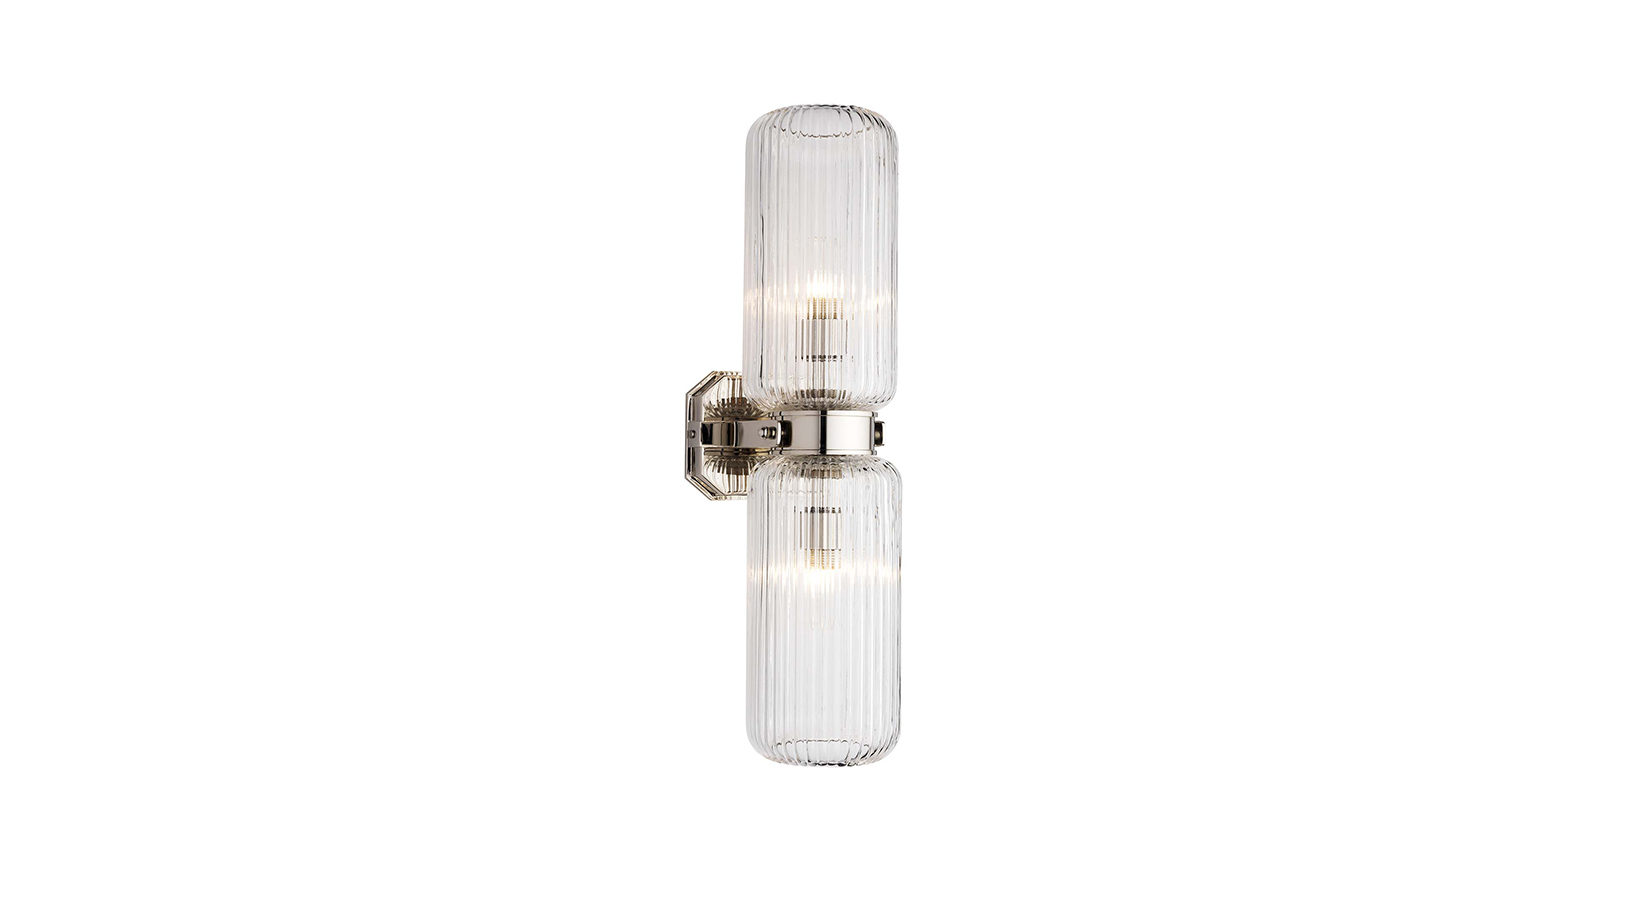 The Double Derwent Light With Fluted Shade